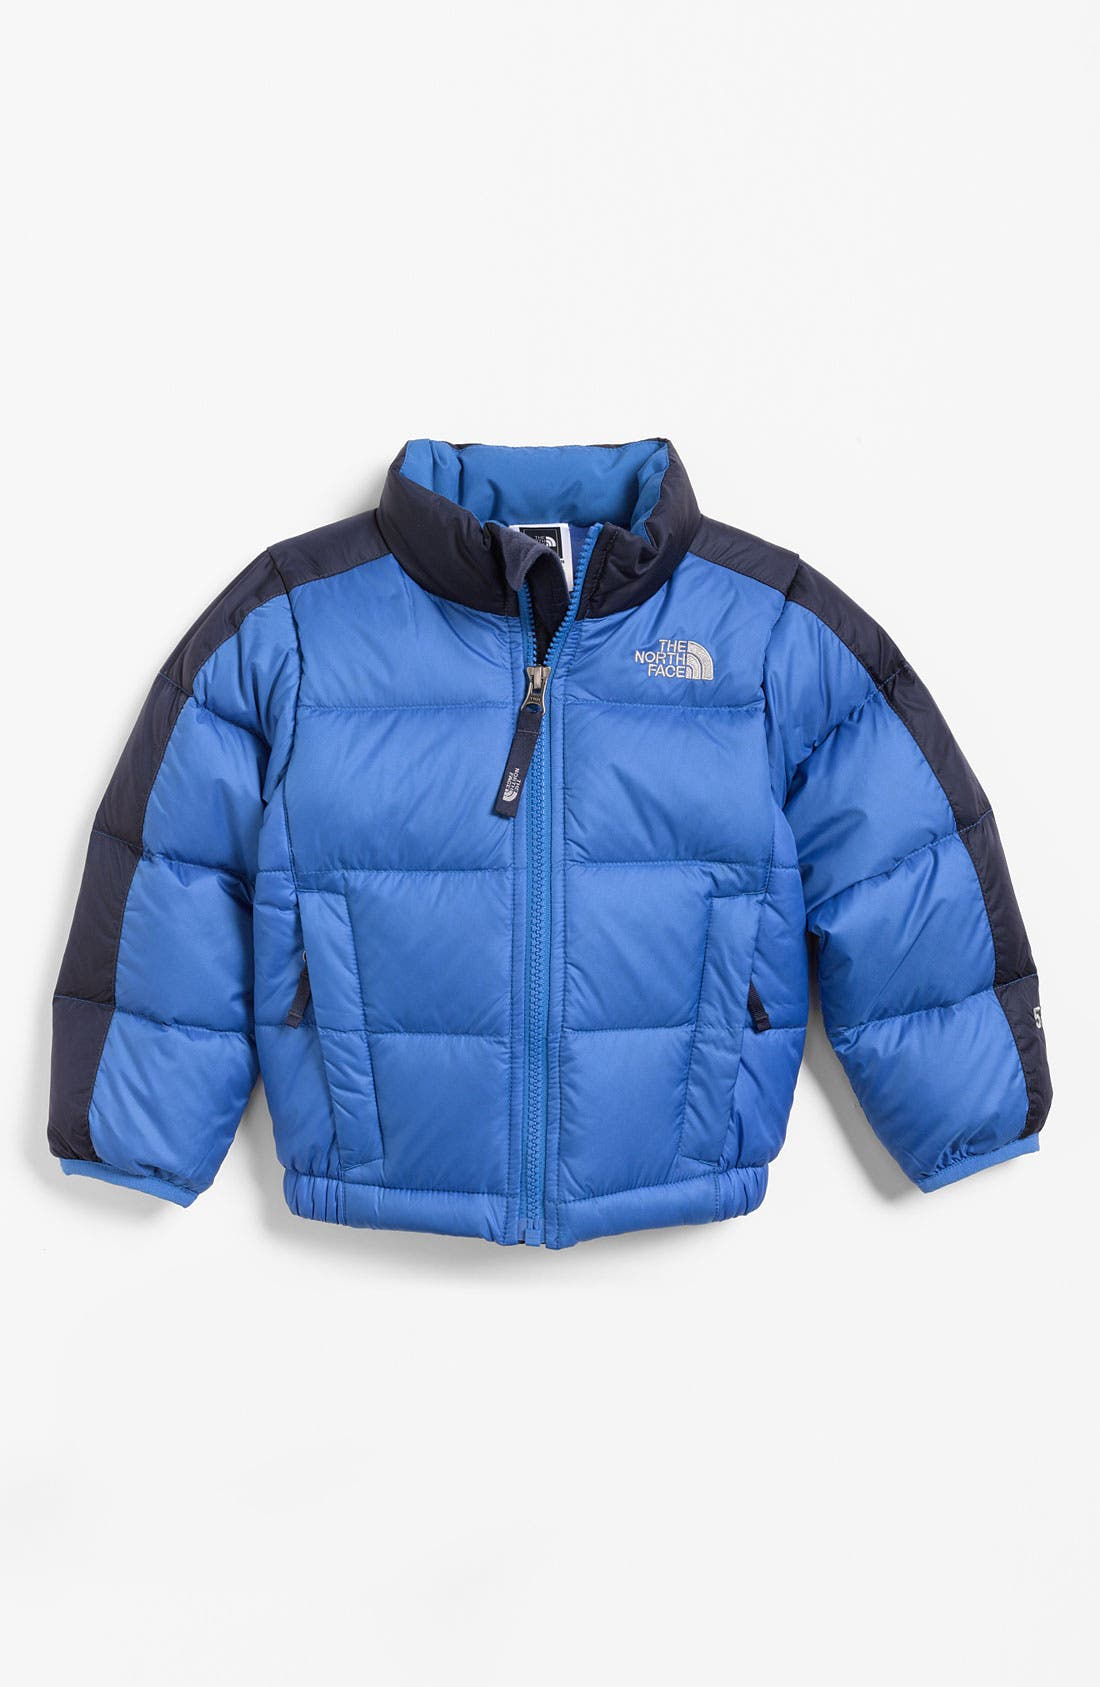 Alternate Image 1 Selected - The North Face 'Aconcagua' Jacket (Toddler) (Nordstrom Exclusive)